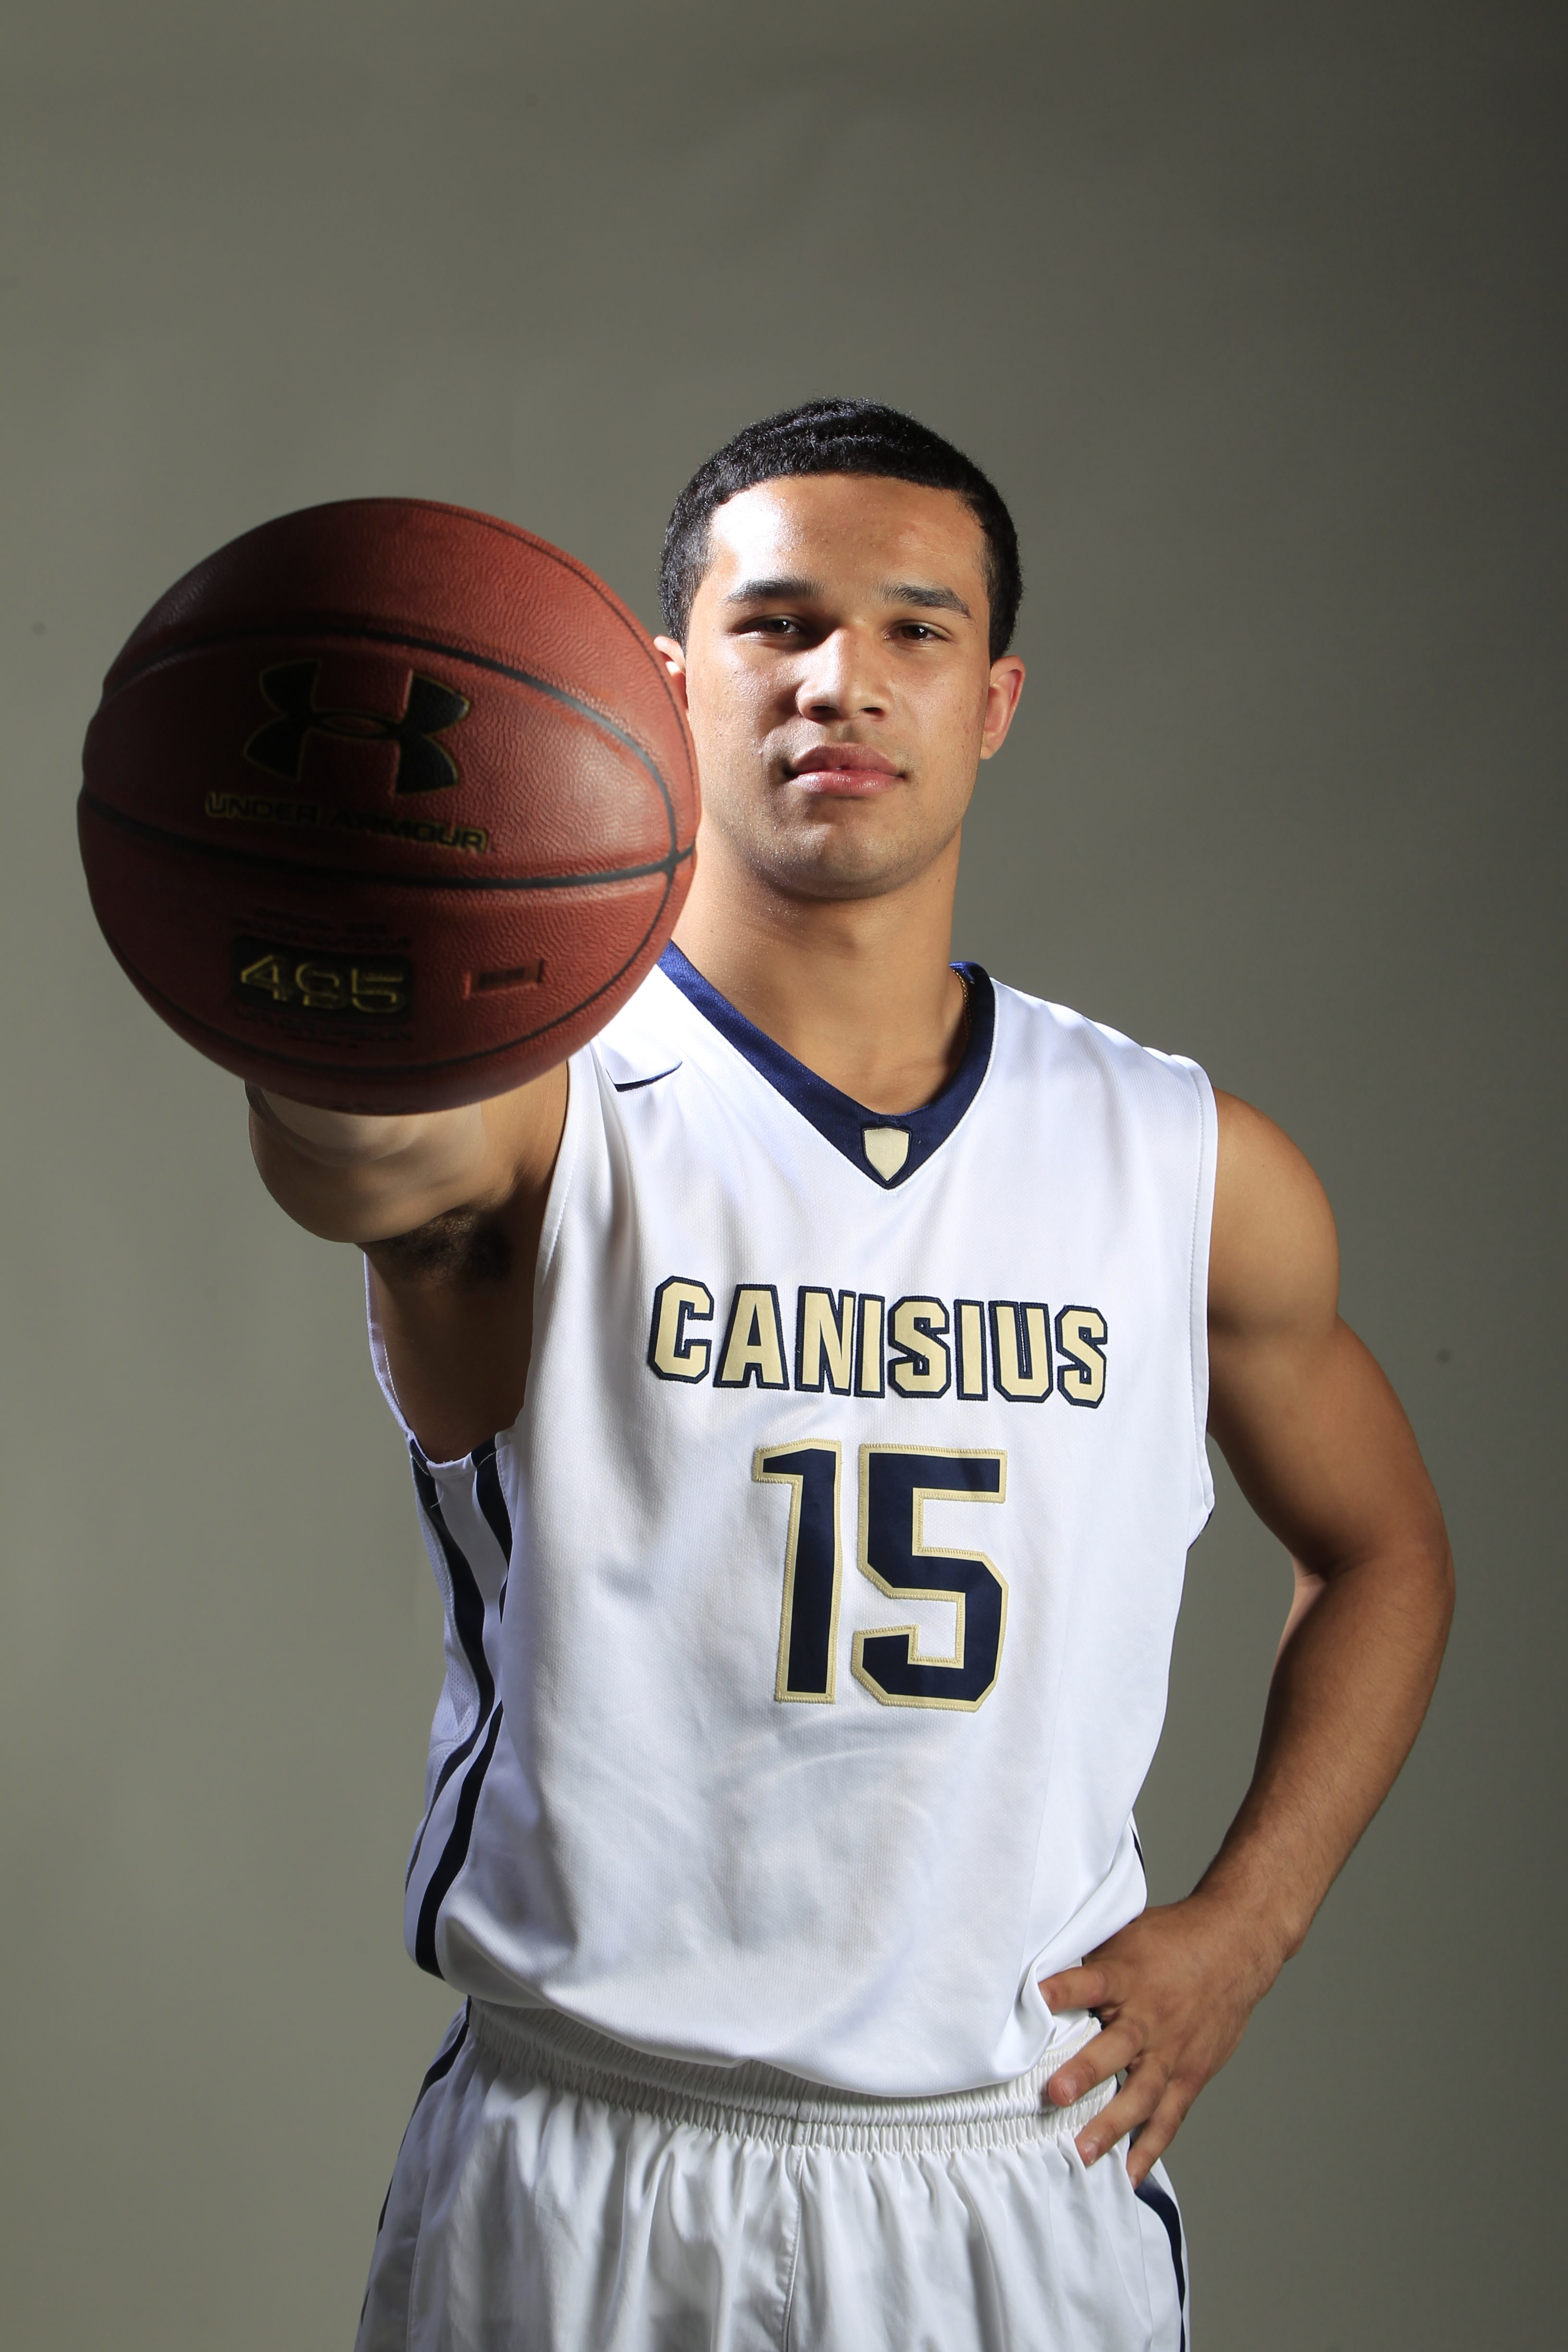 Justin Jones, Canisius High School,,All-WNY basketball player on Monday, April 4, 2016. (Harry Scull Jr./Buffalo News)